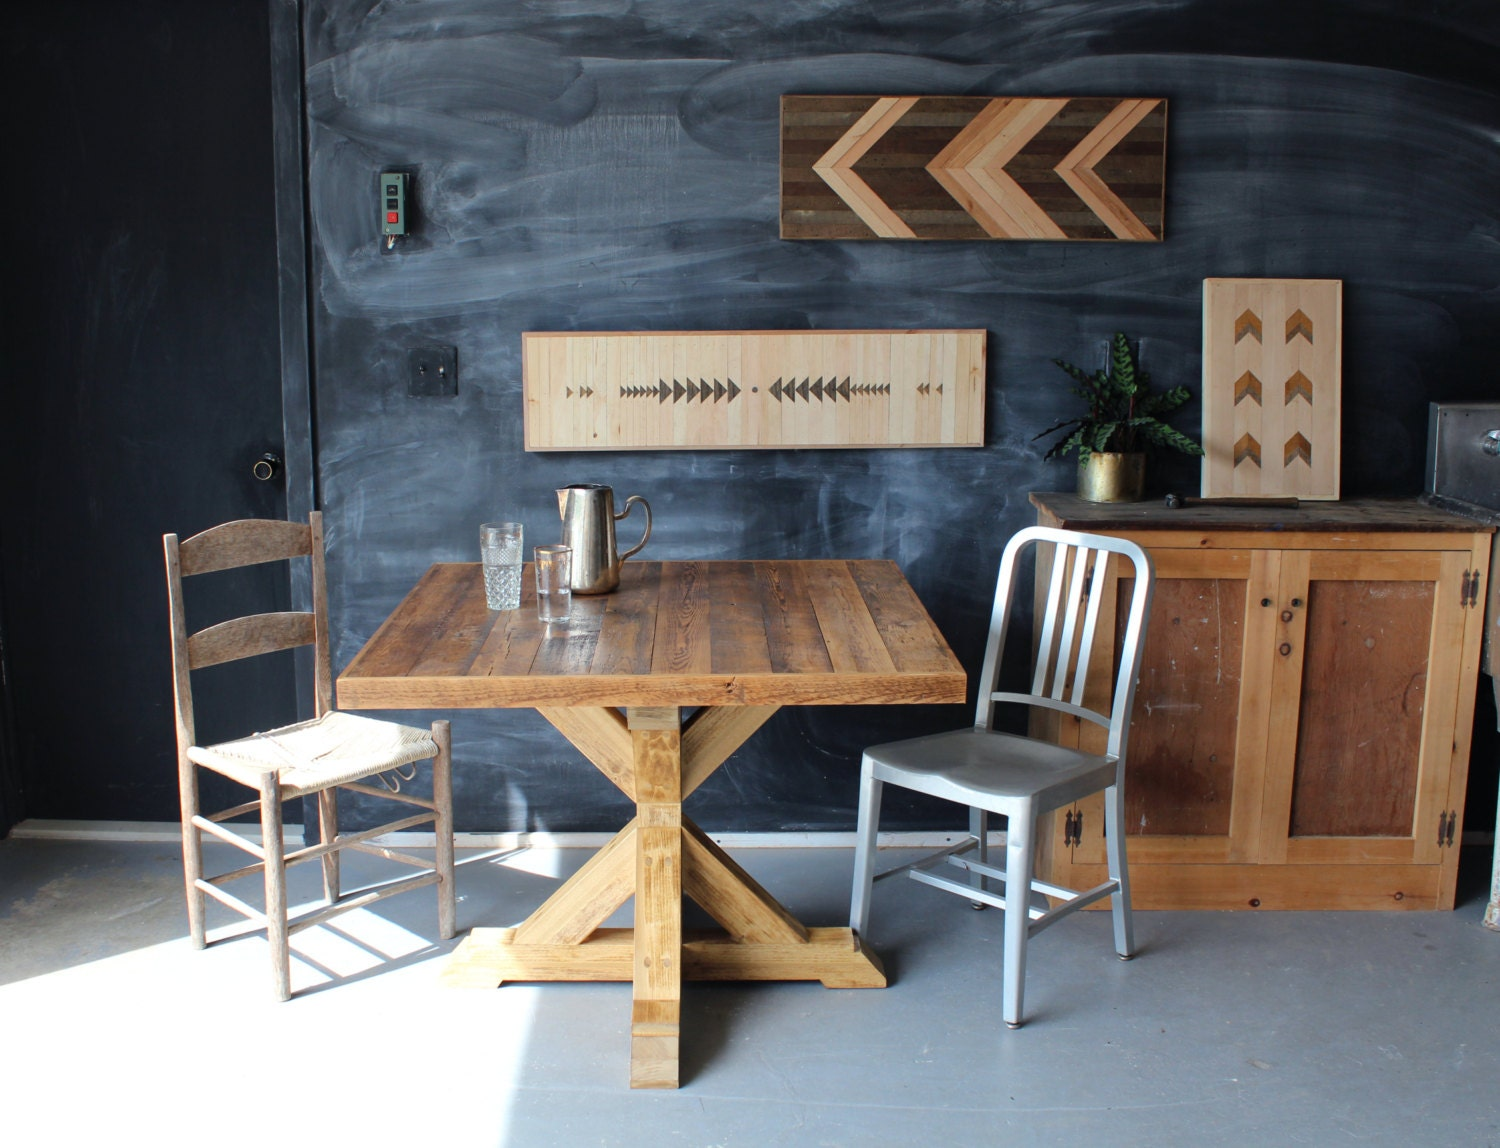 trestle base kitchen table reclaimed wood rustic modern dining